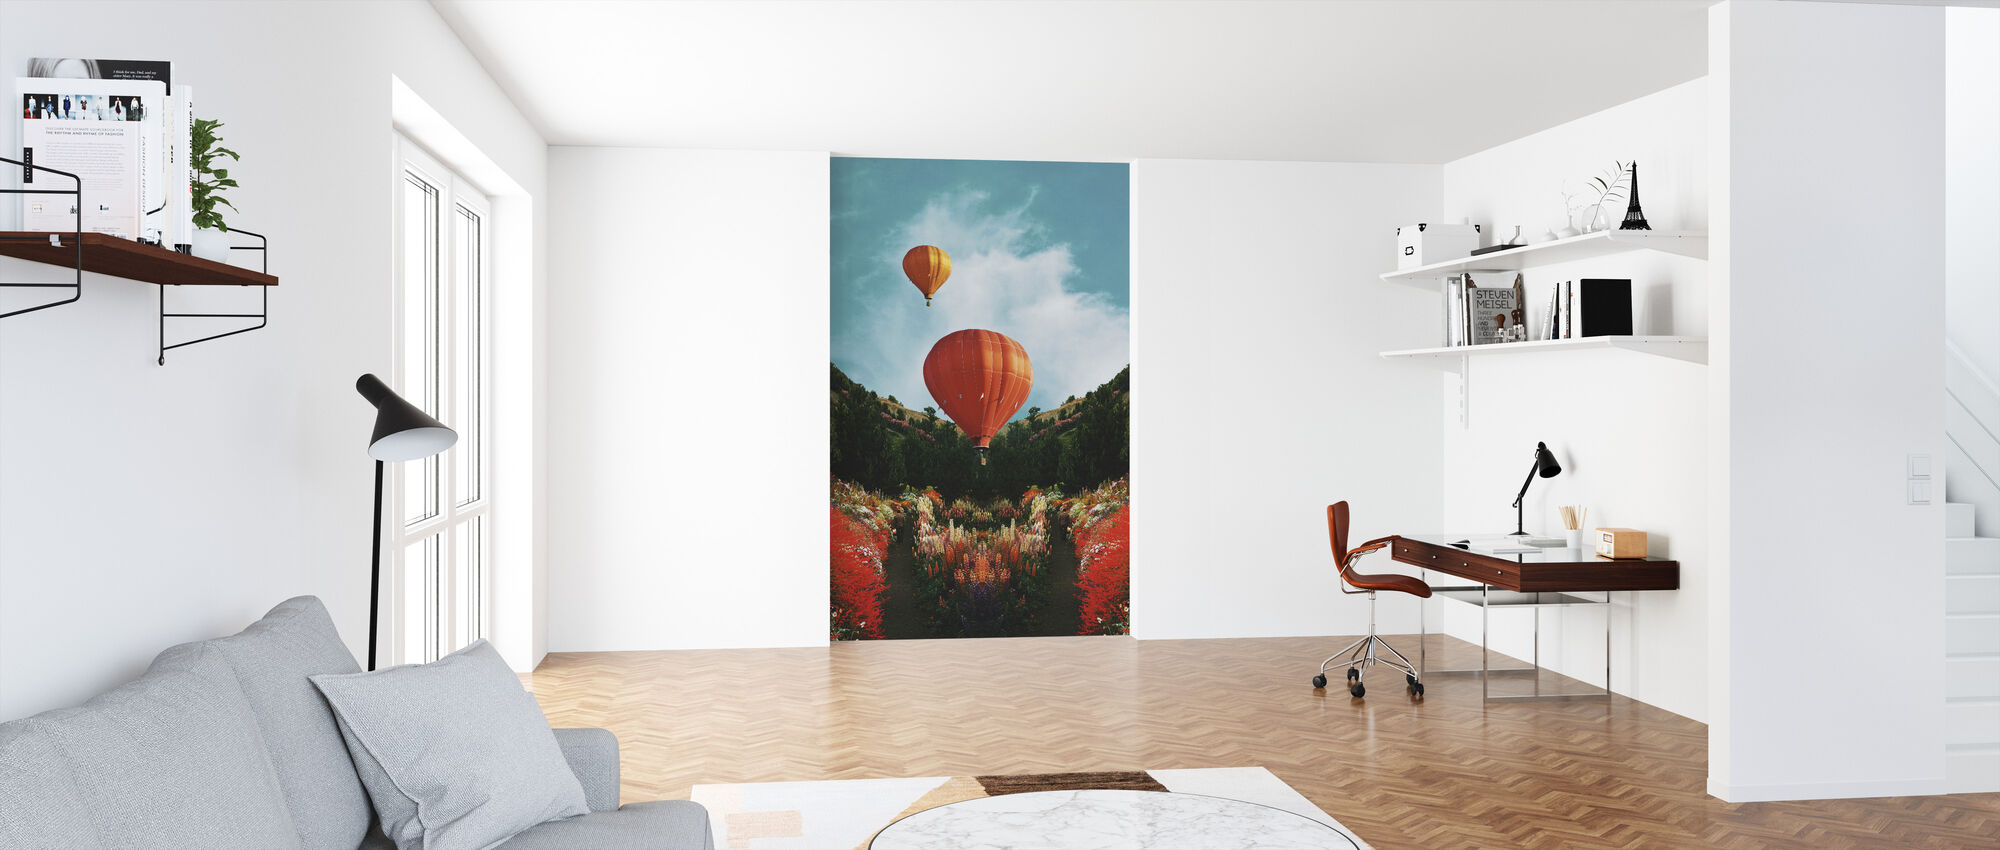 Hot Air - Wallpaper - Office